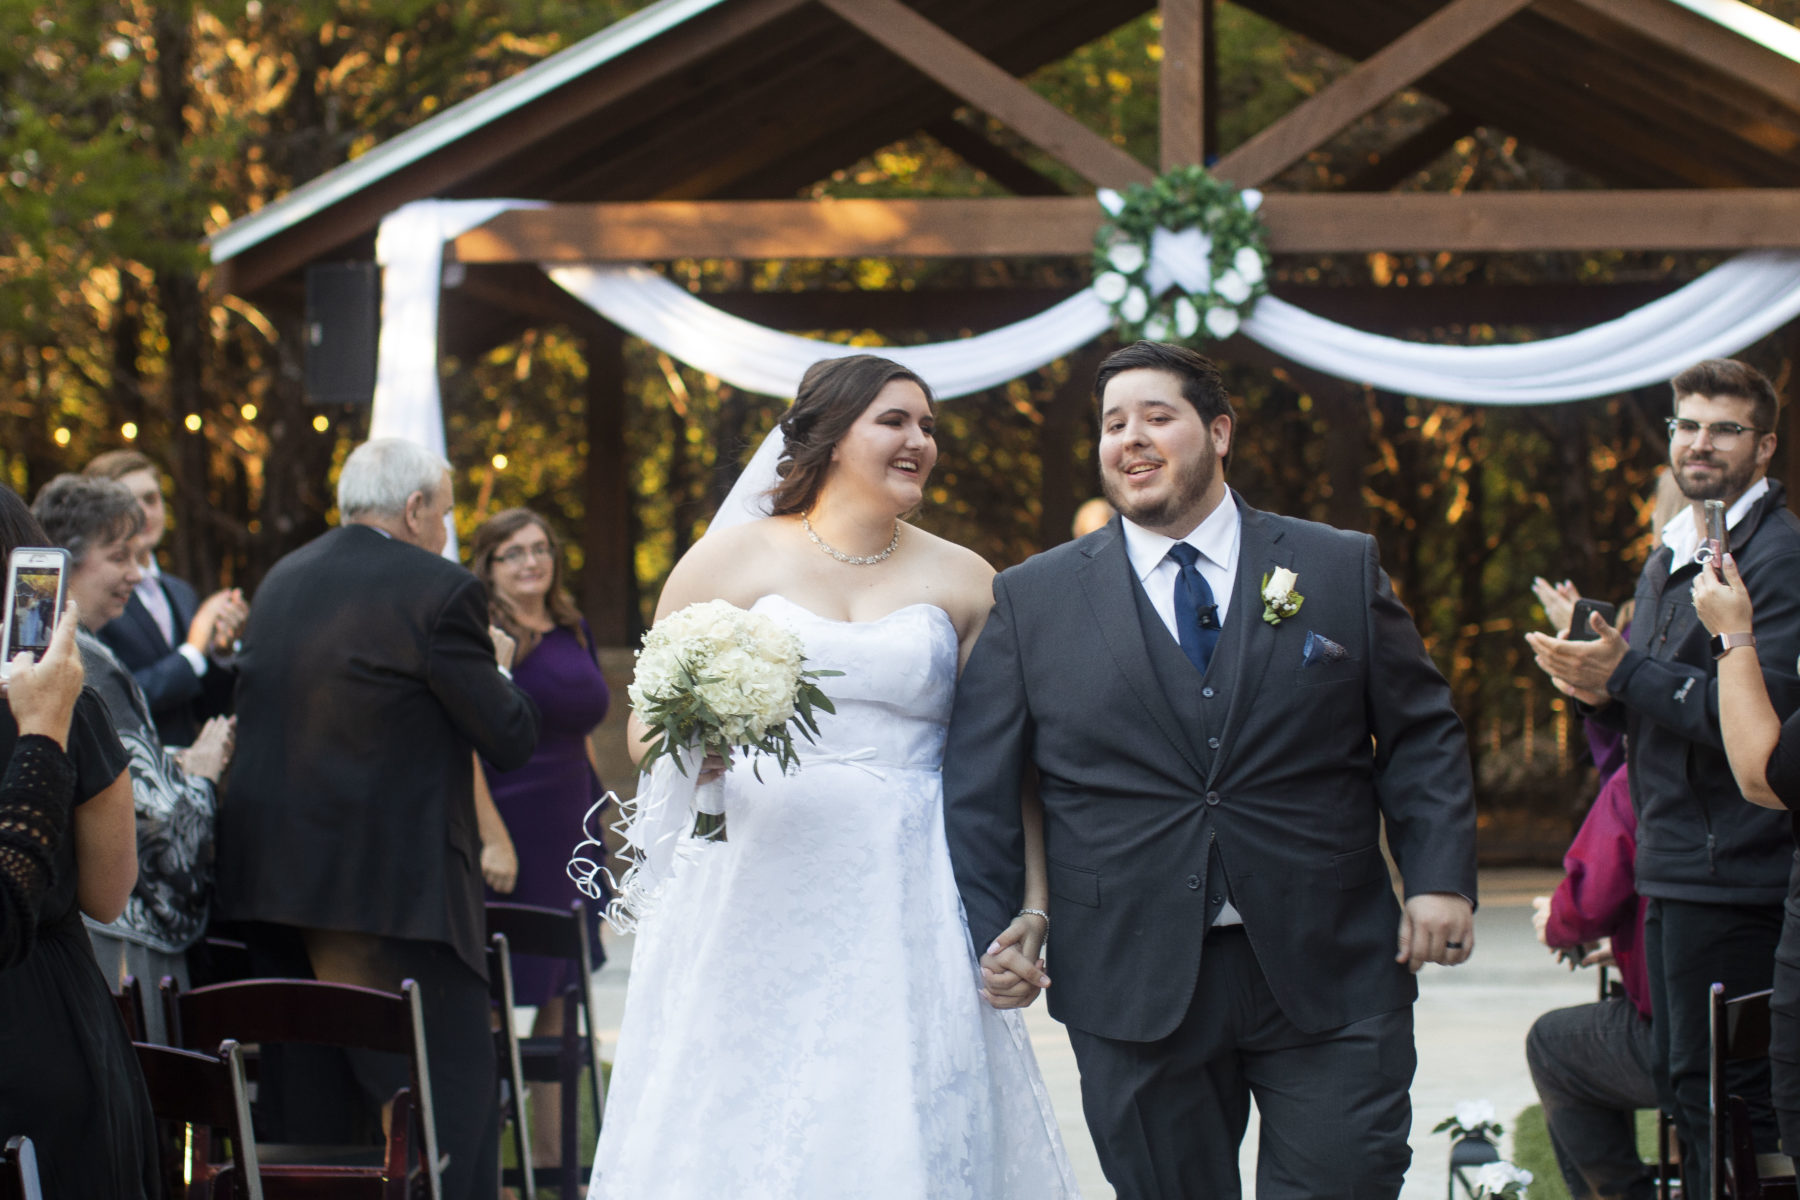 Daniel and I walking down the aisle together laughing and smiling at each other